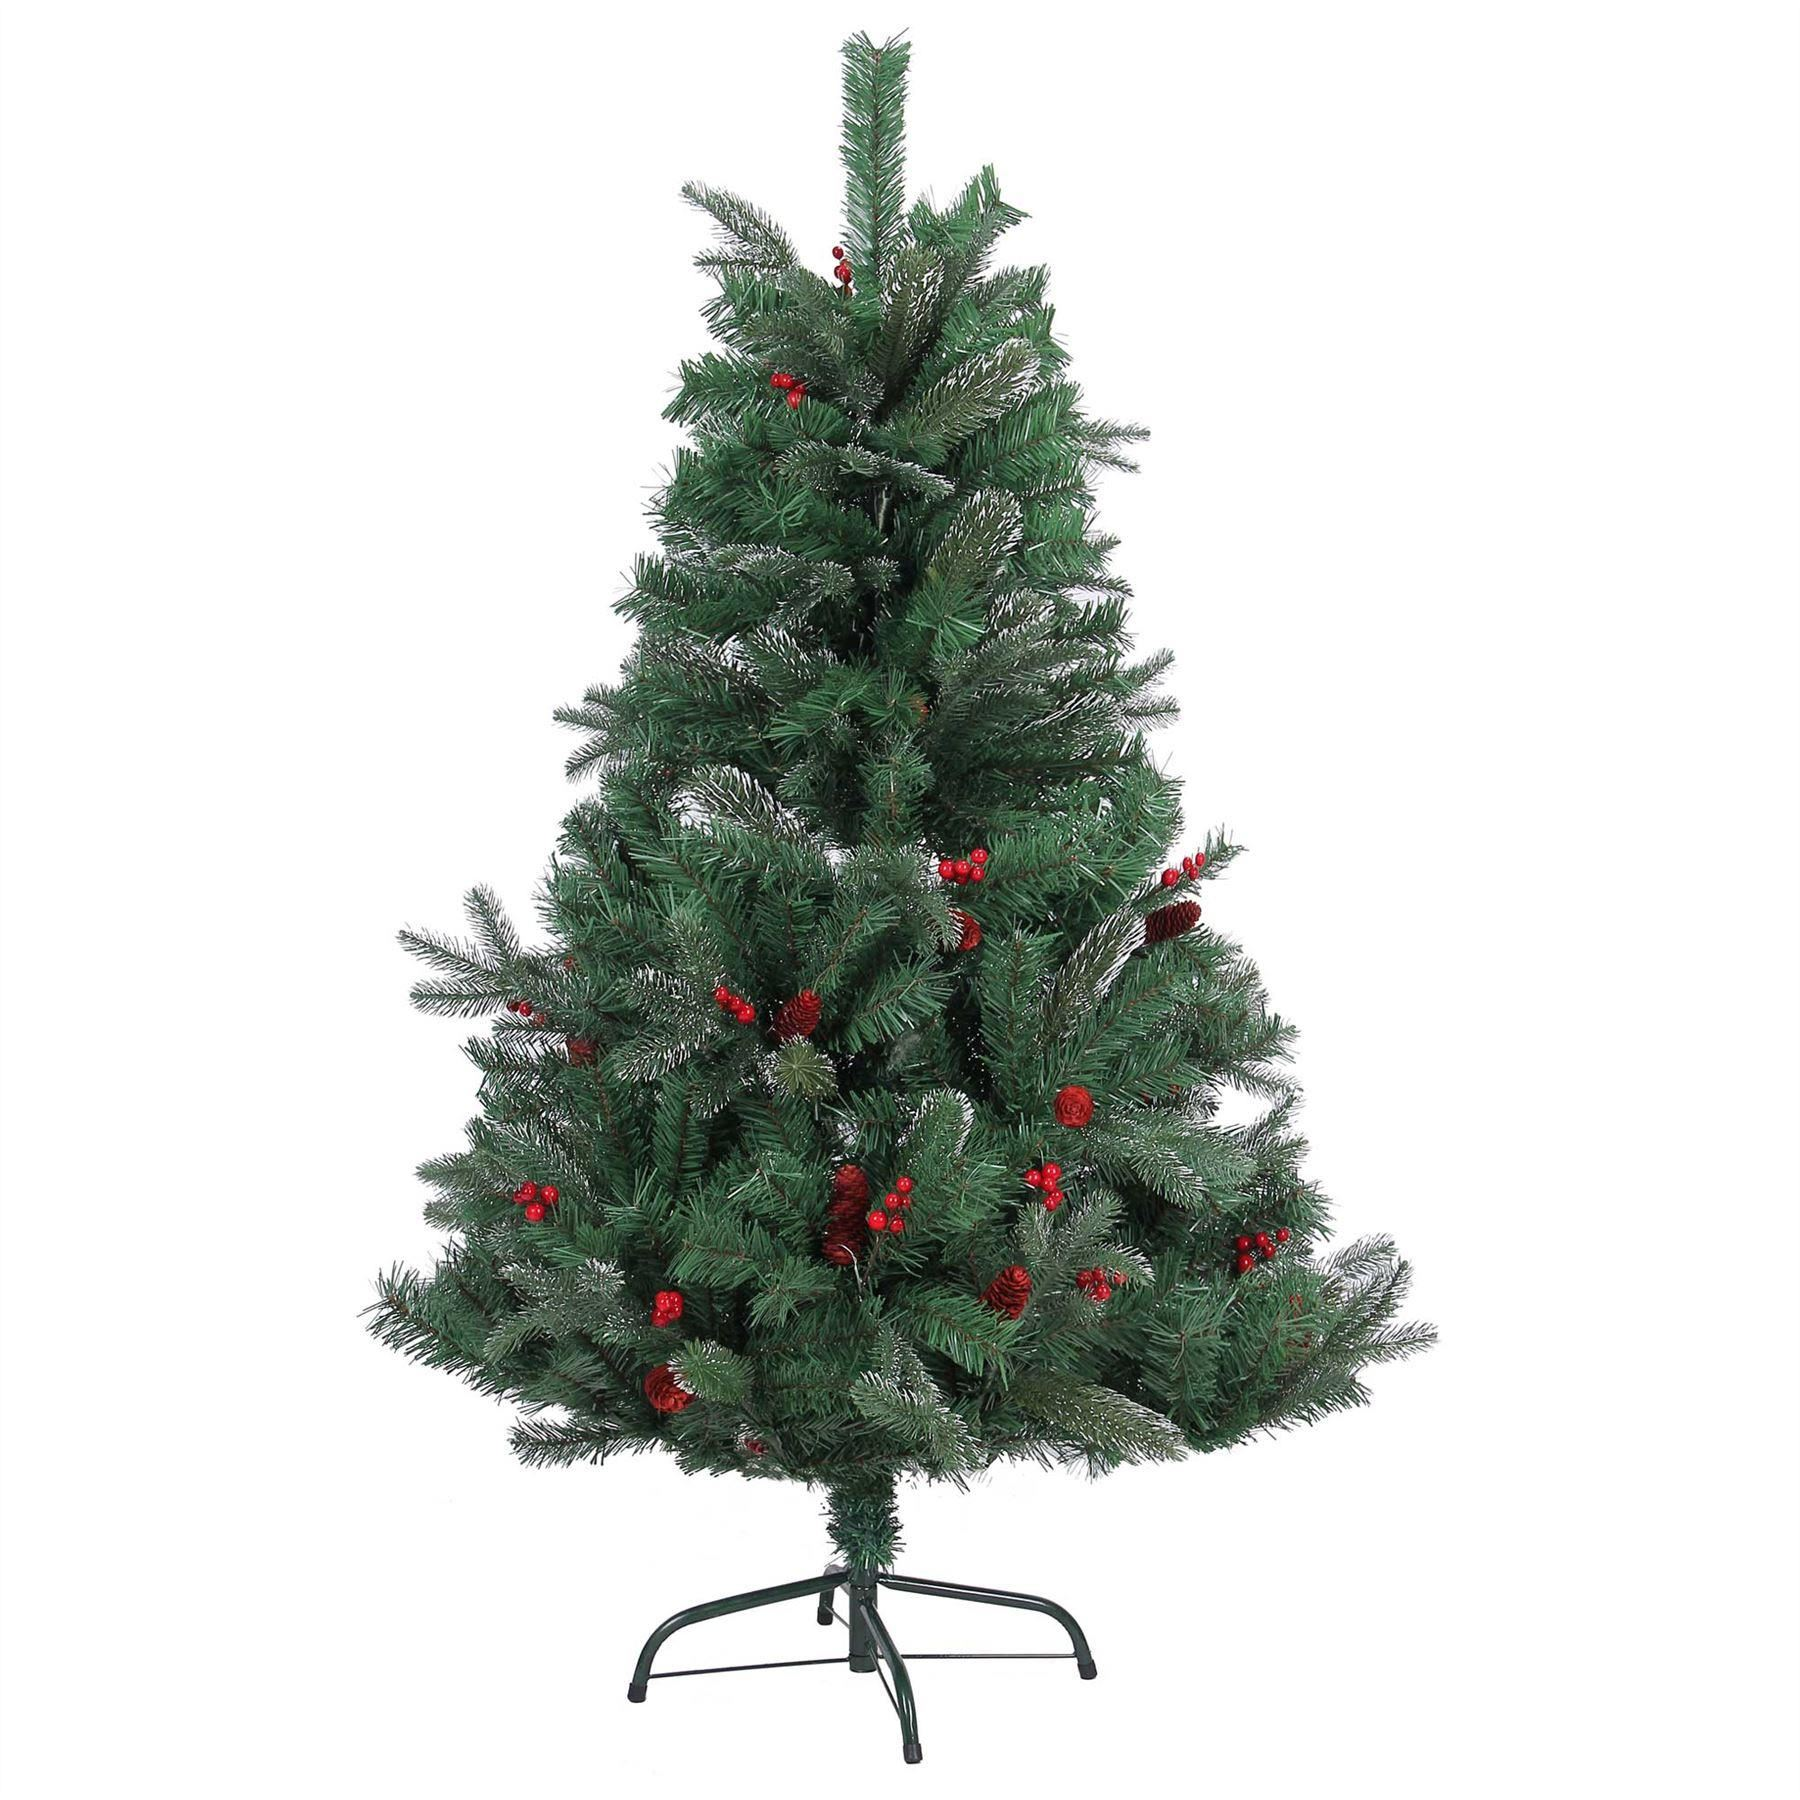 Red Red Pine Christmas Tree: 4ft 5ft 6ft 7ft Artificial Christmas Tree Frosted Tips Red